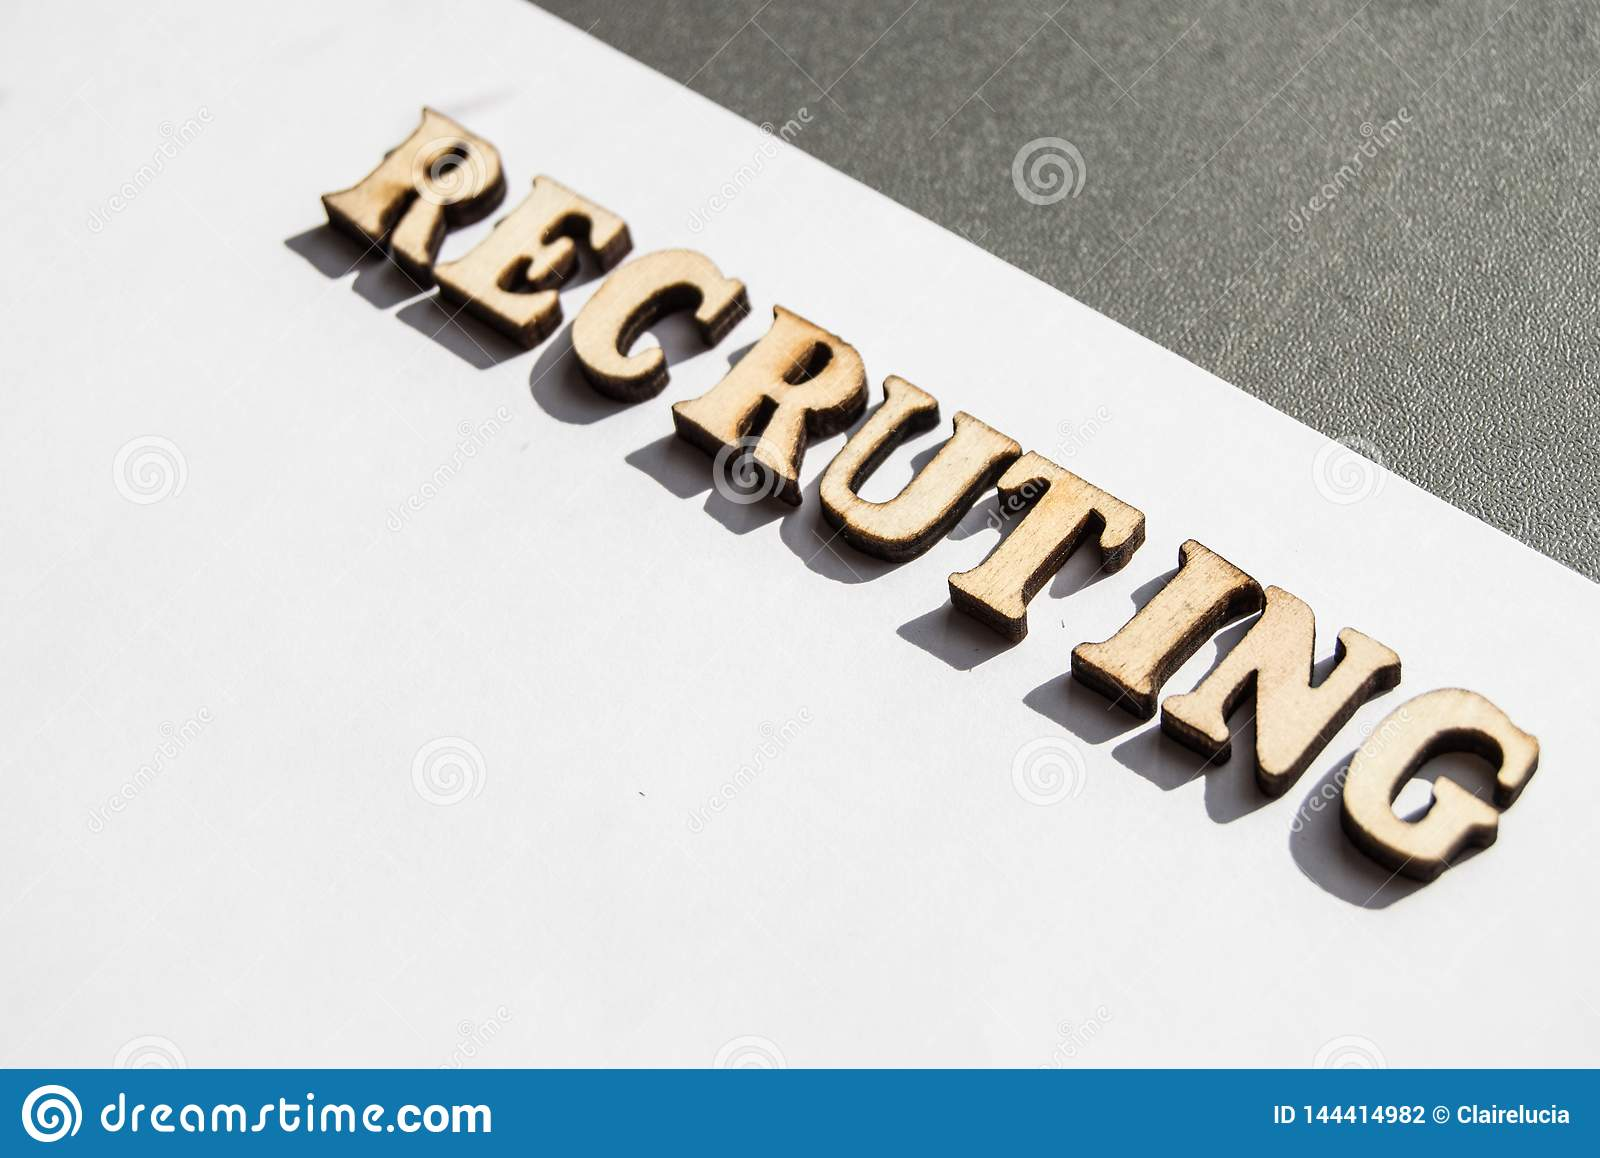 The Word Recruiting Is Written In Wooden Letters On A White